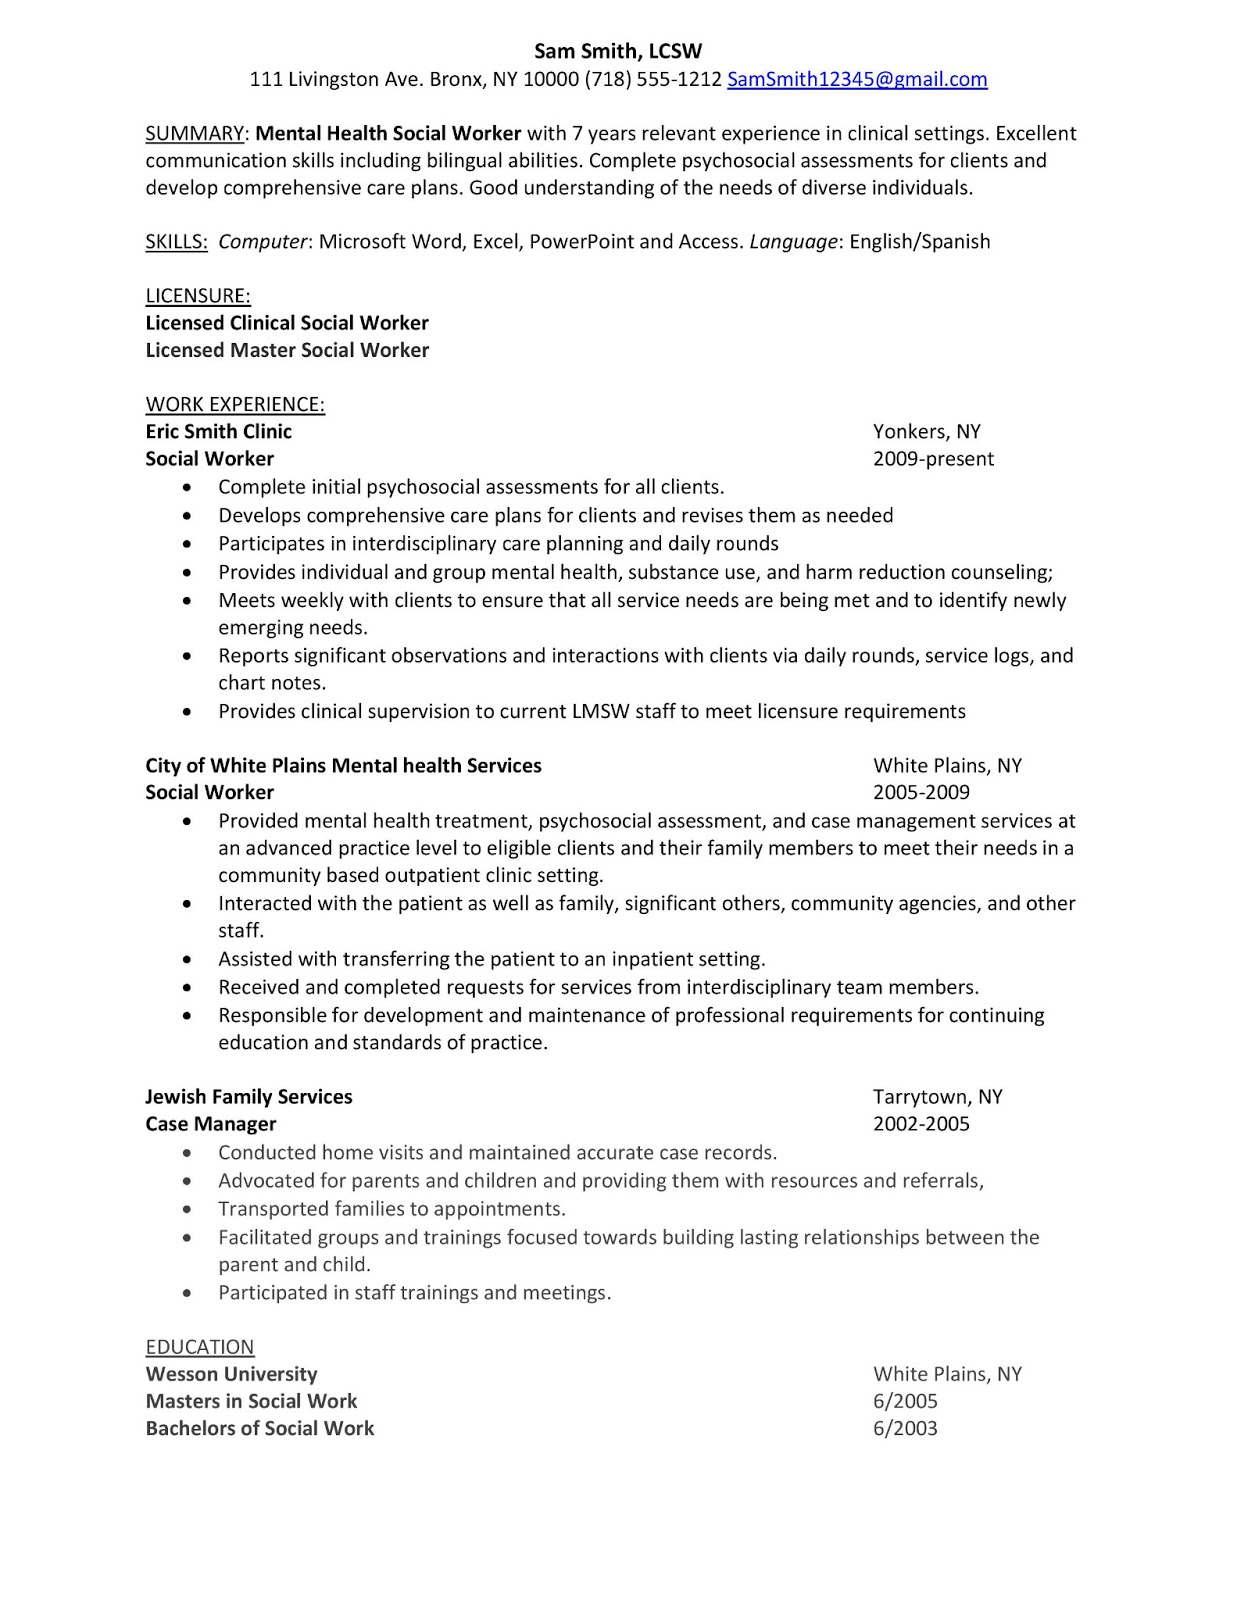 The Best Resume And Cover Letter